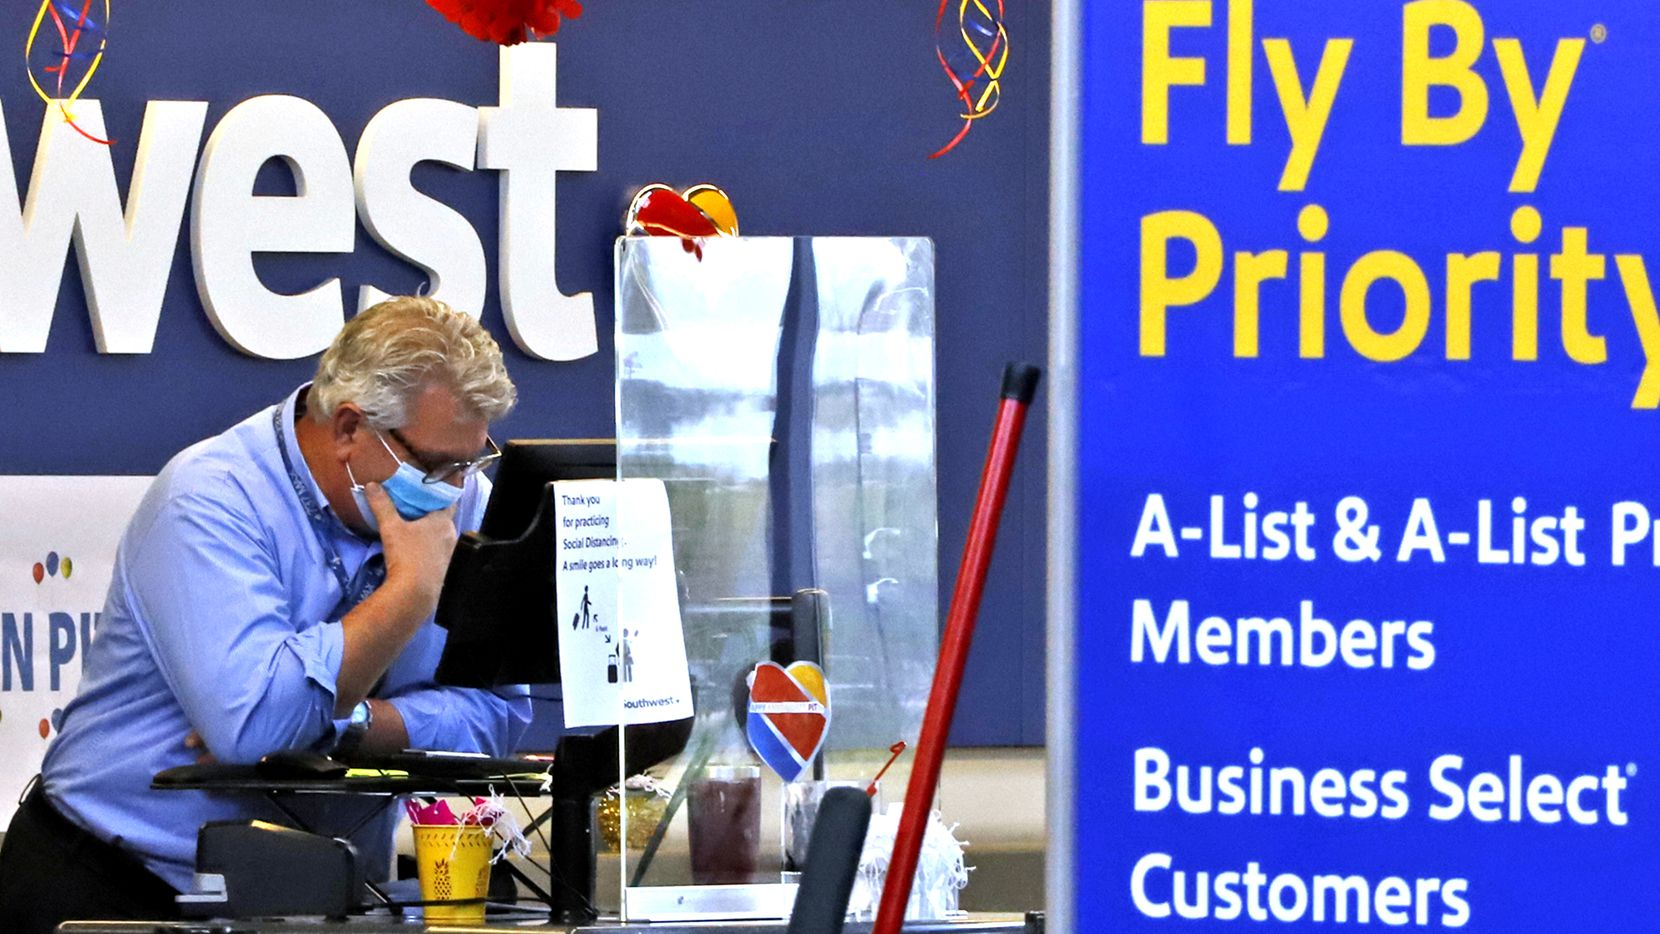 A Southwest Airline ticket counter at Greater Pittsburgh International Airport on May 7, 2020. (AP Photo/Gene J. Puskar)